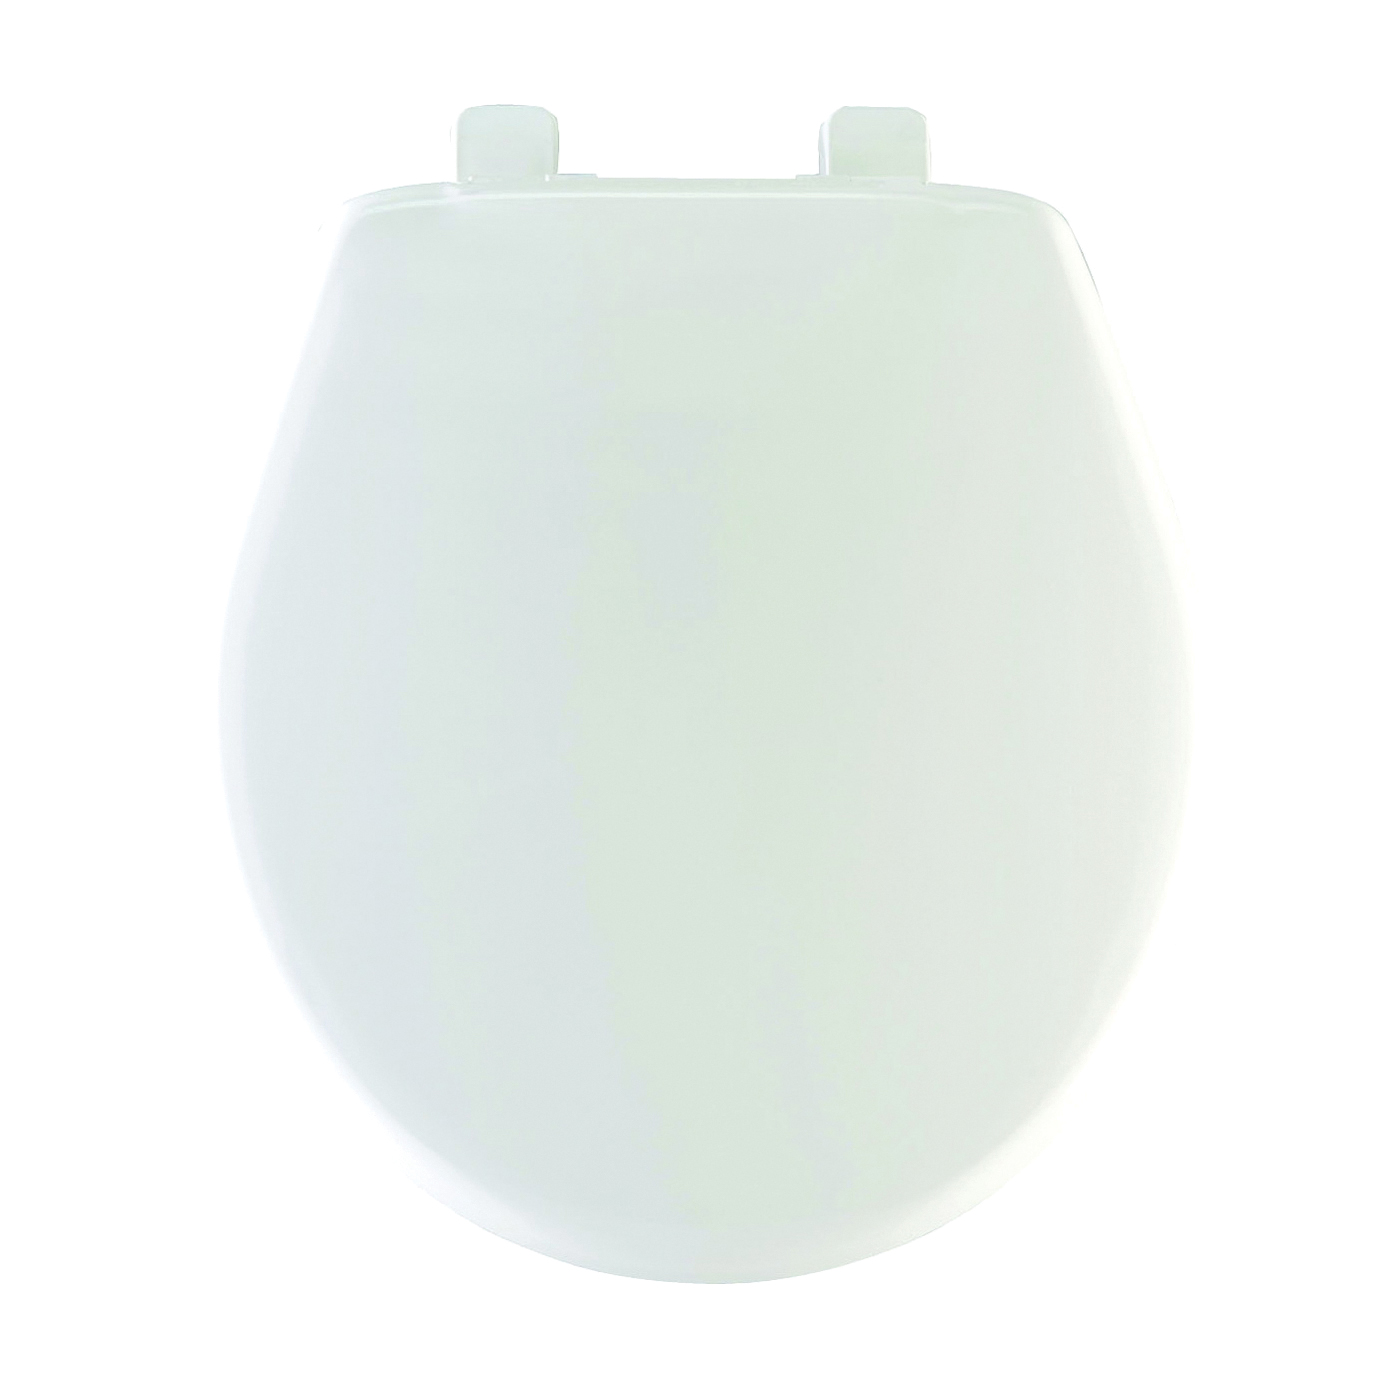 Picture of Mayfair 80SLOW000 Toilet Seat, Round, Plastic, White, Hex-Tite Hinge